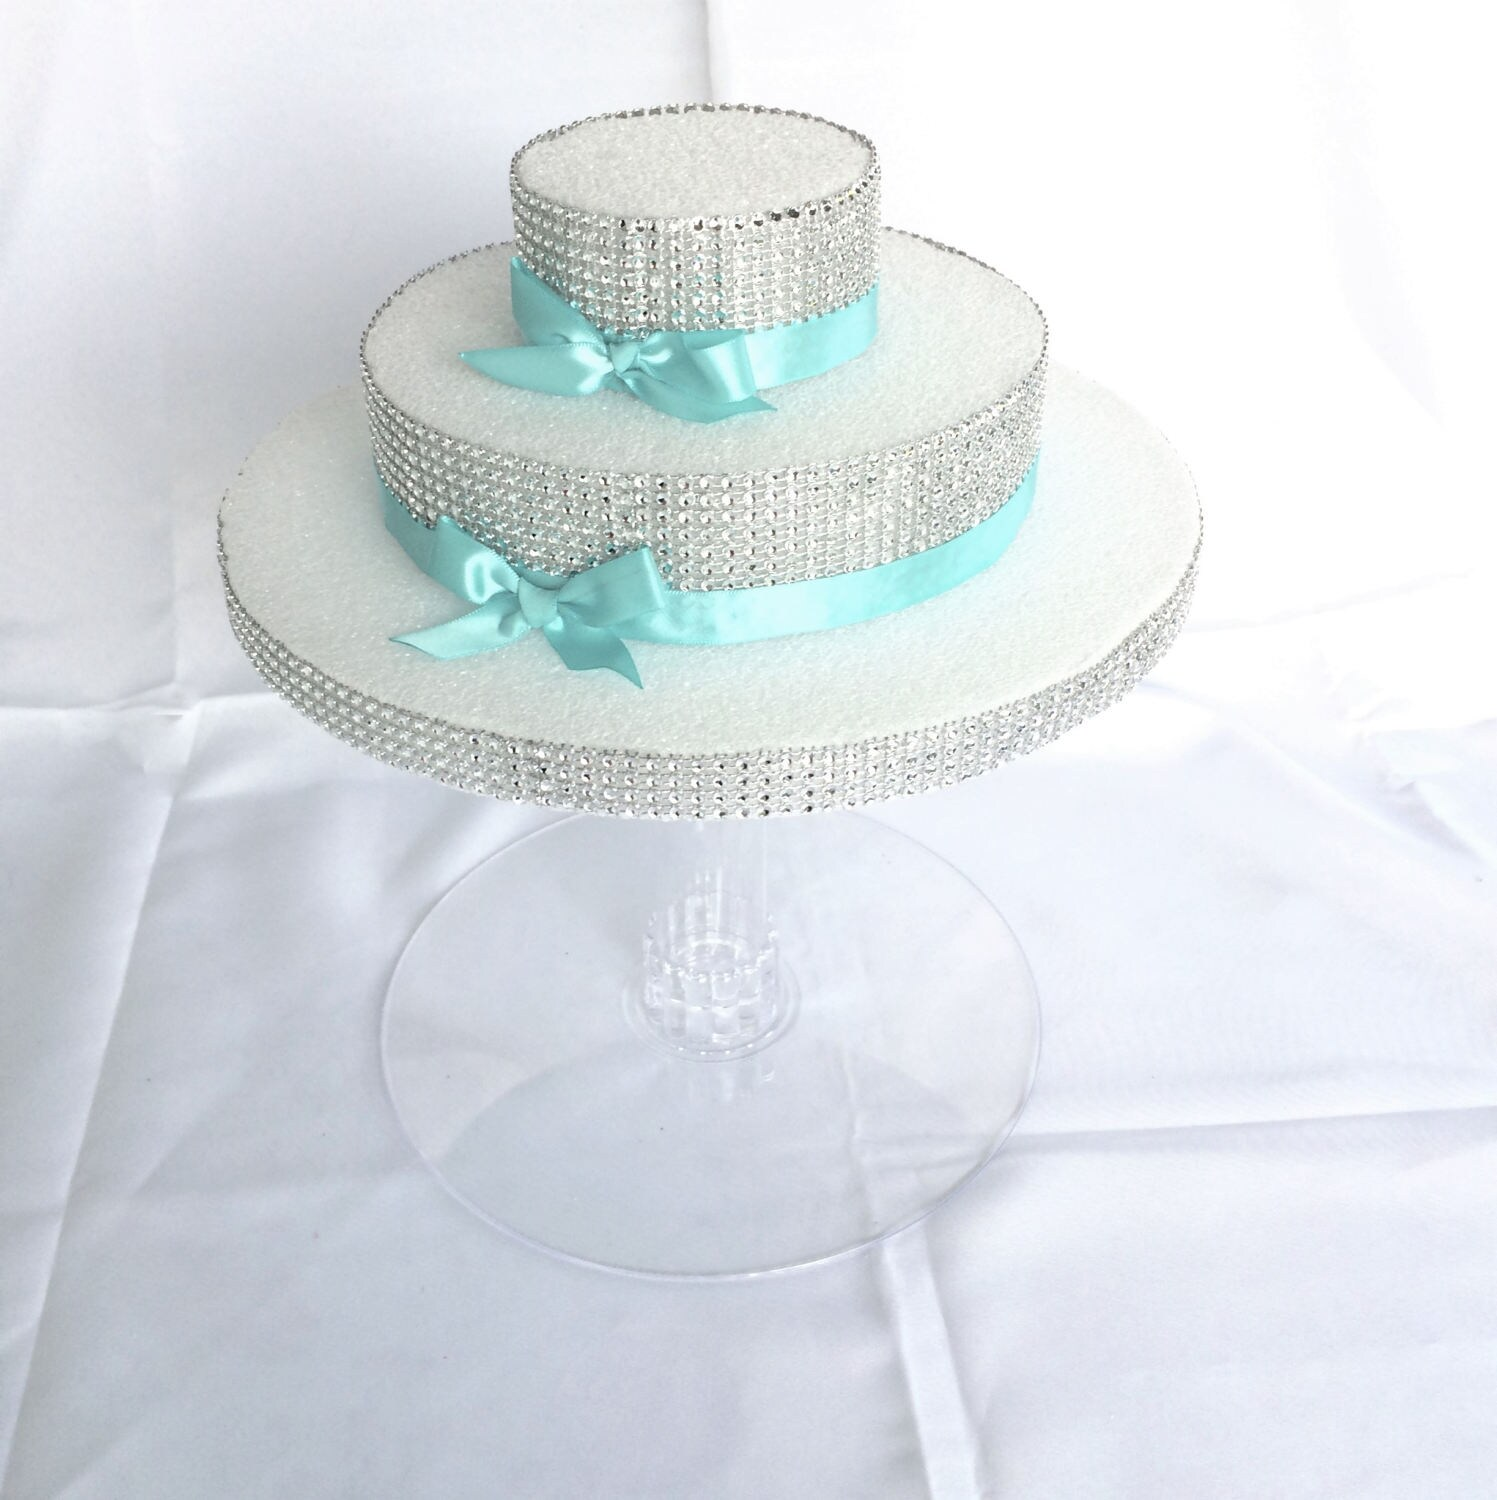 5 Cake Stand Set for Wedding Cake Displays 2 inch gap / Cup cake ...